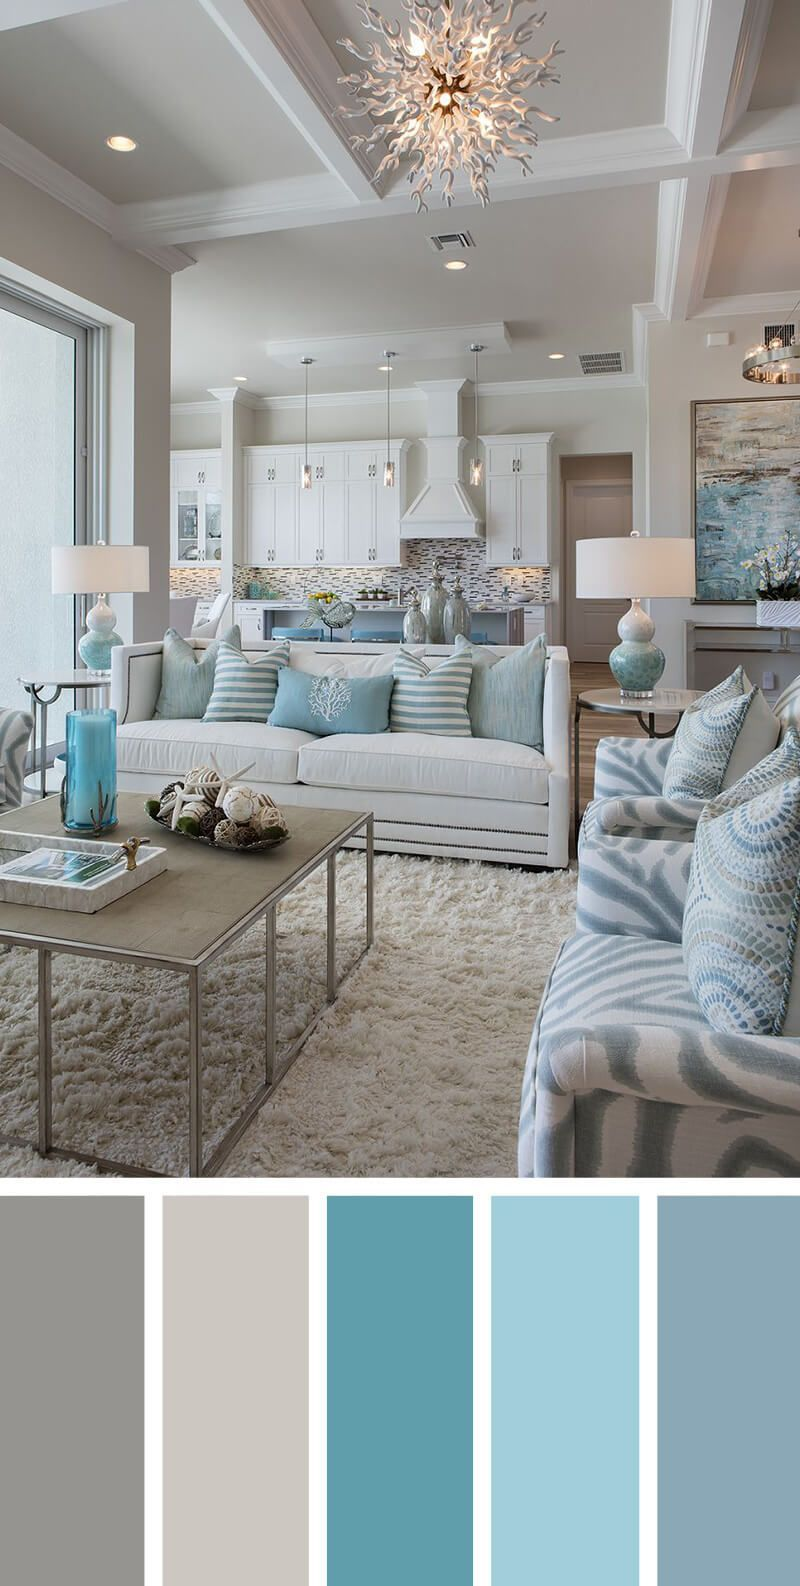 50 beach decor living room 2021 in 2020 living room on living room paint ideas 2021 id=69781